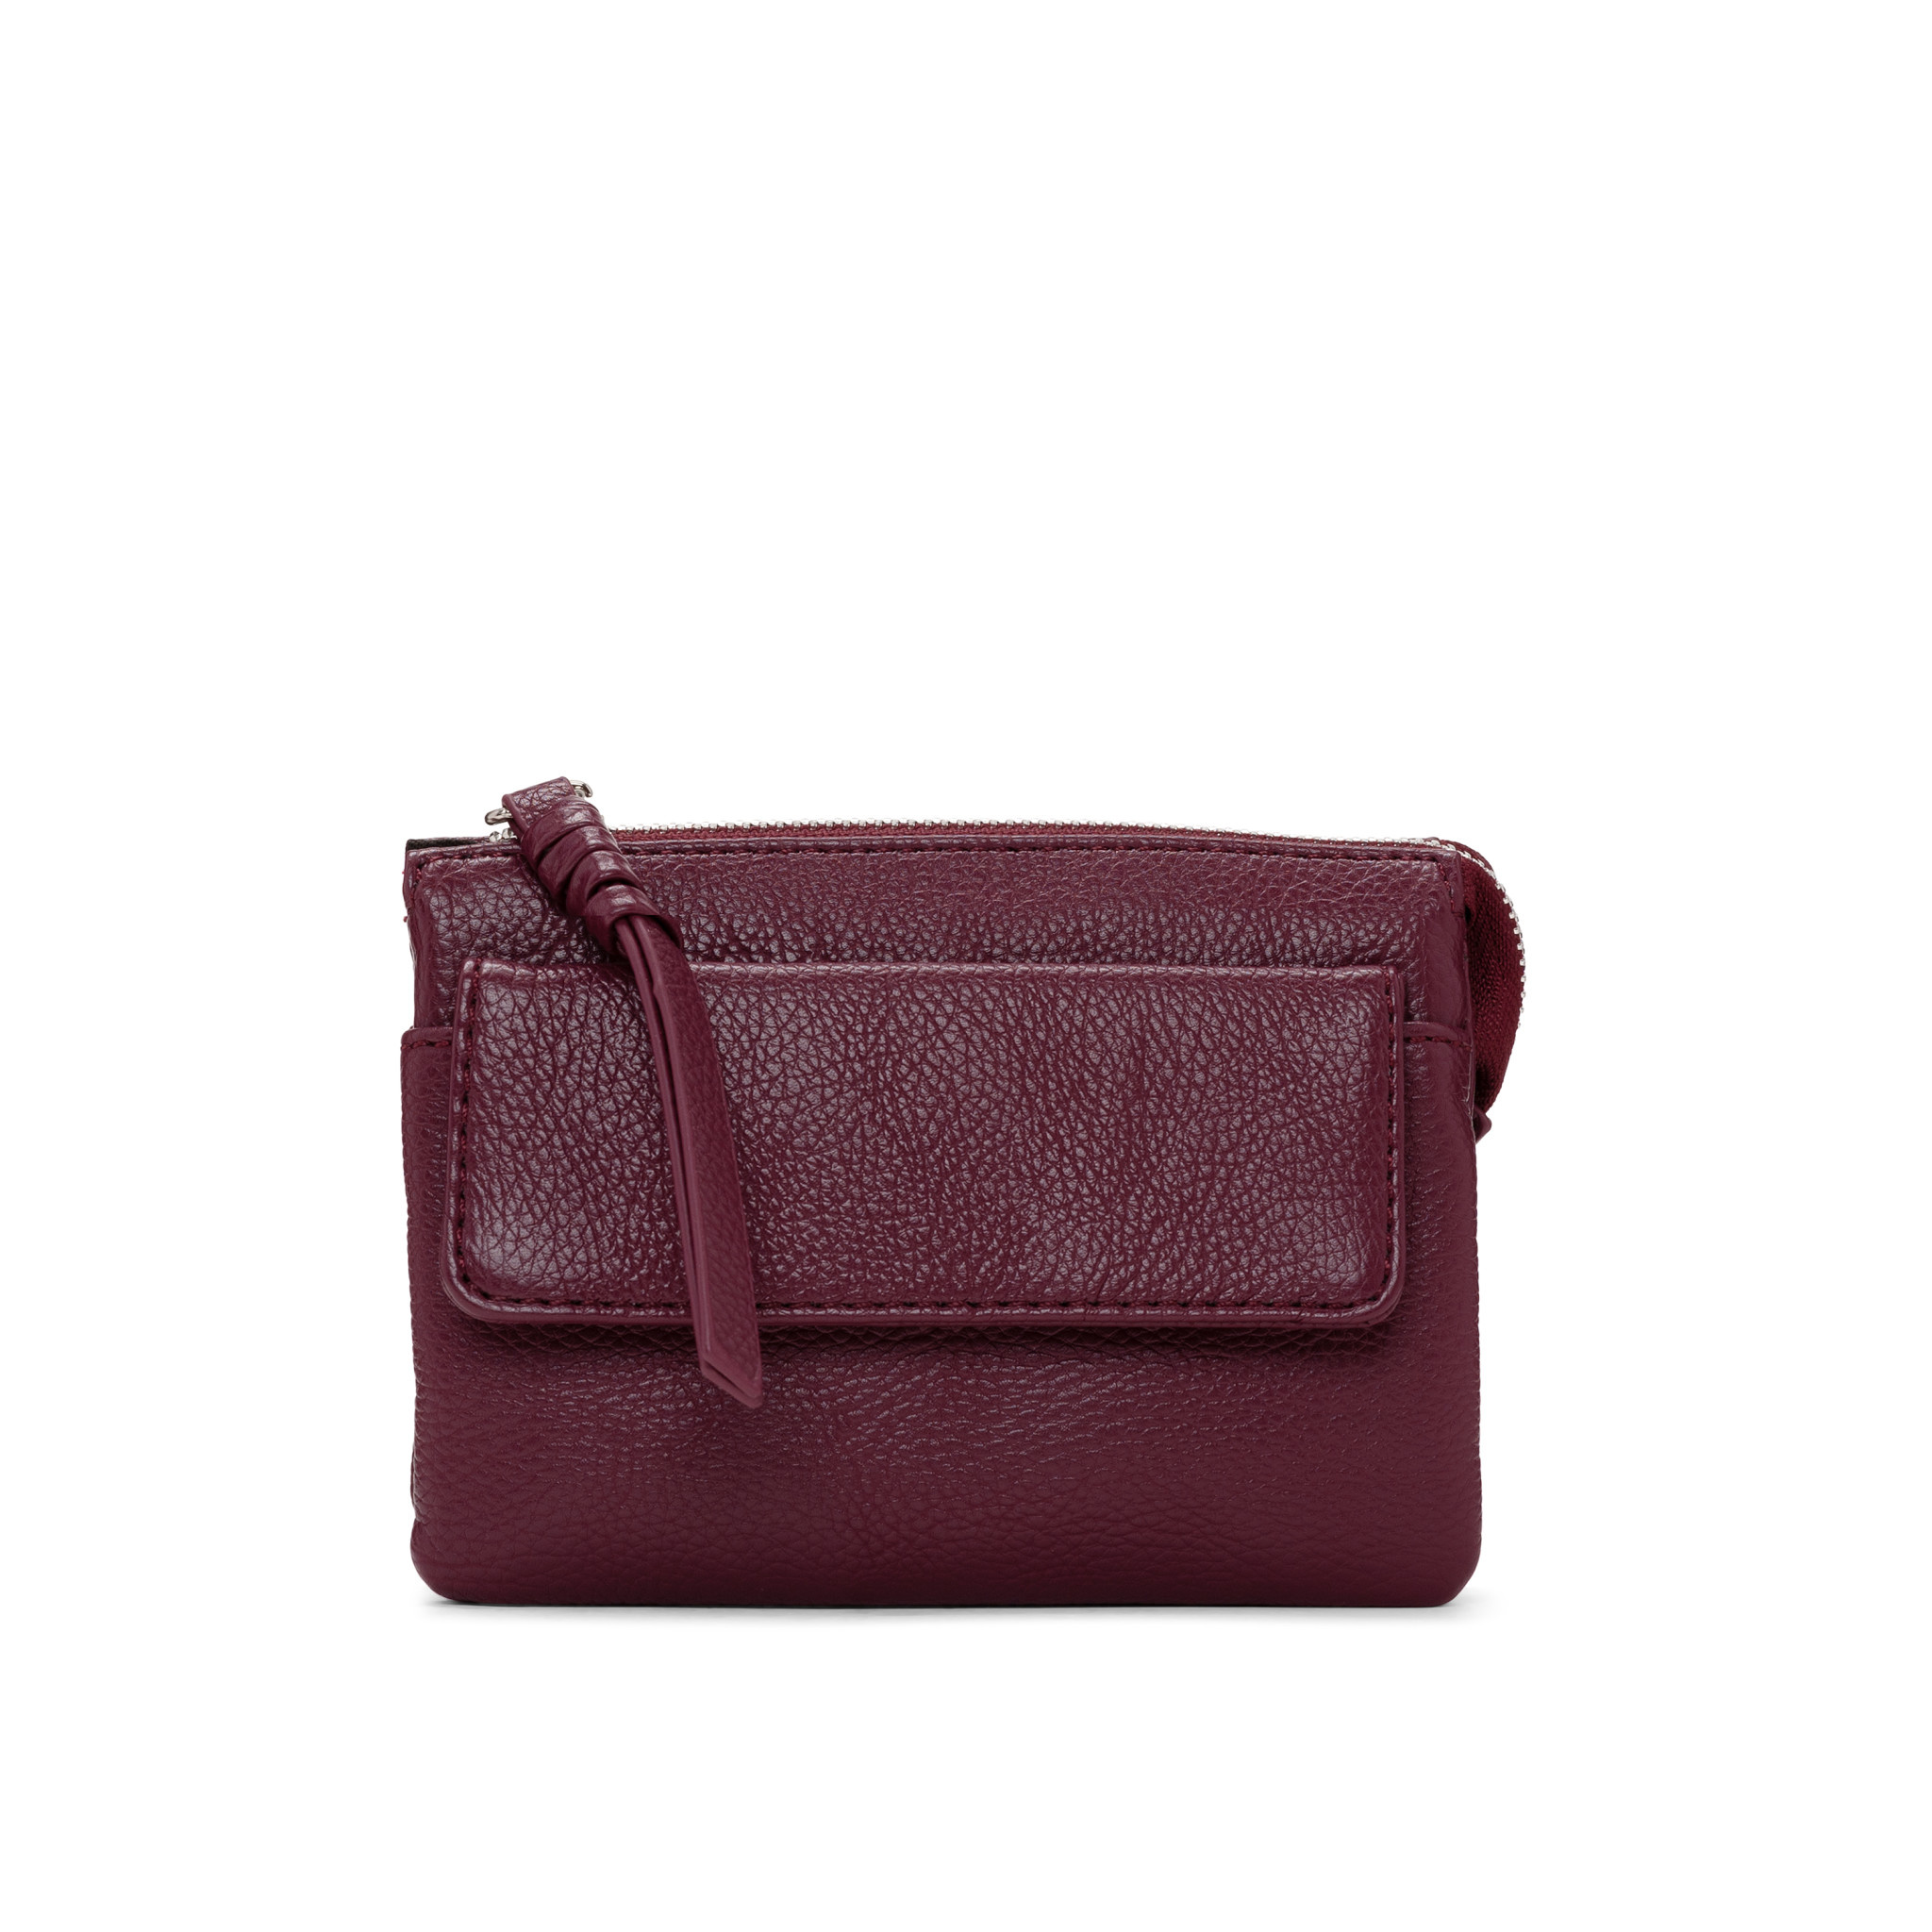 Colab Colab Smooth Pebble Wallet (#6532) - Wine